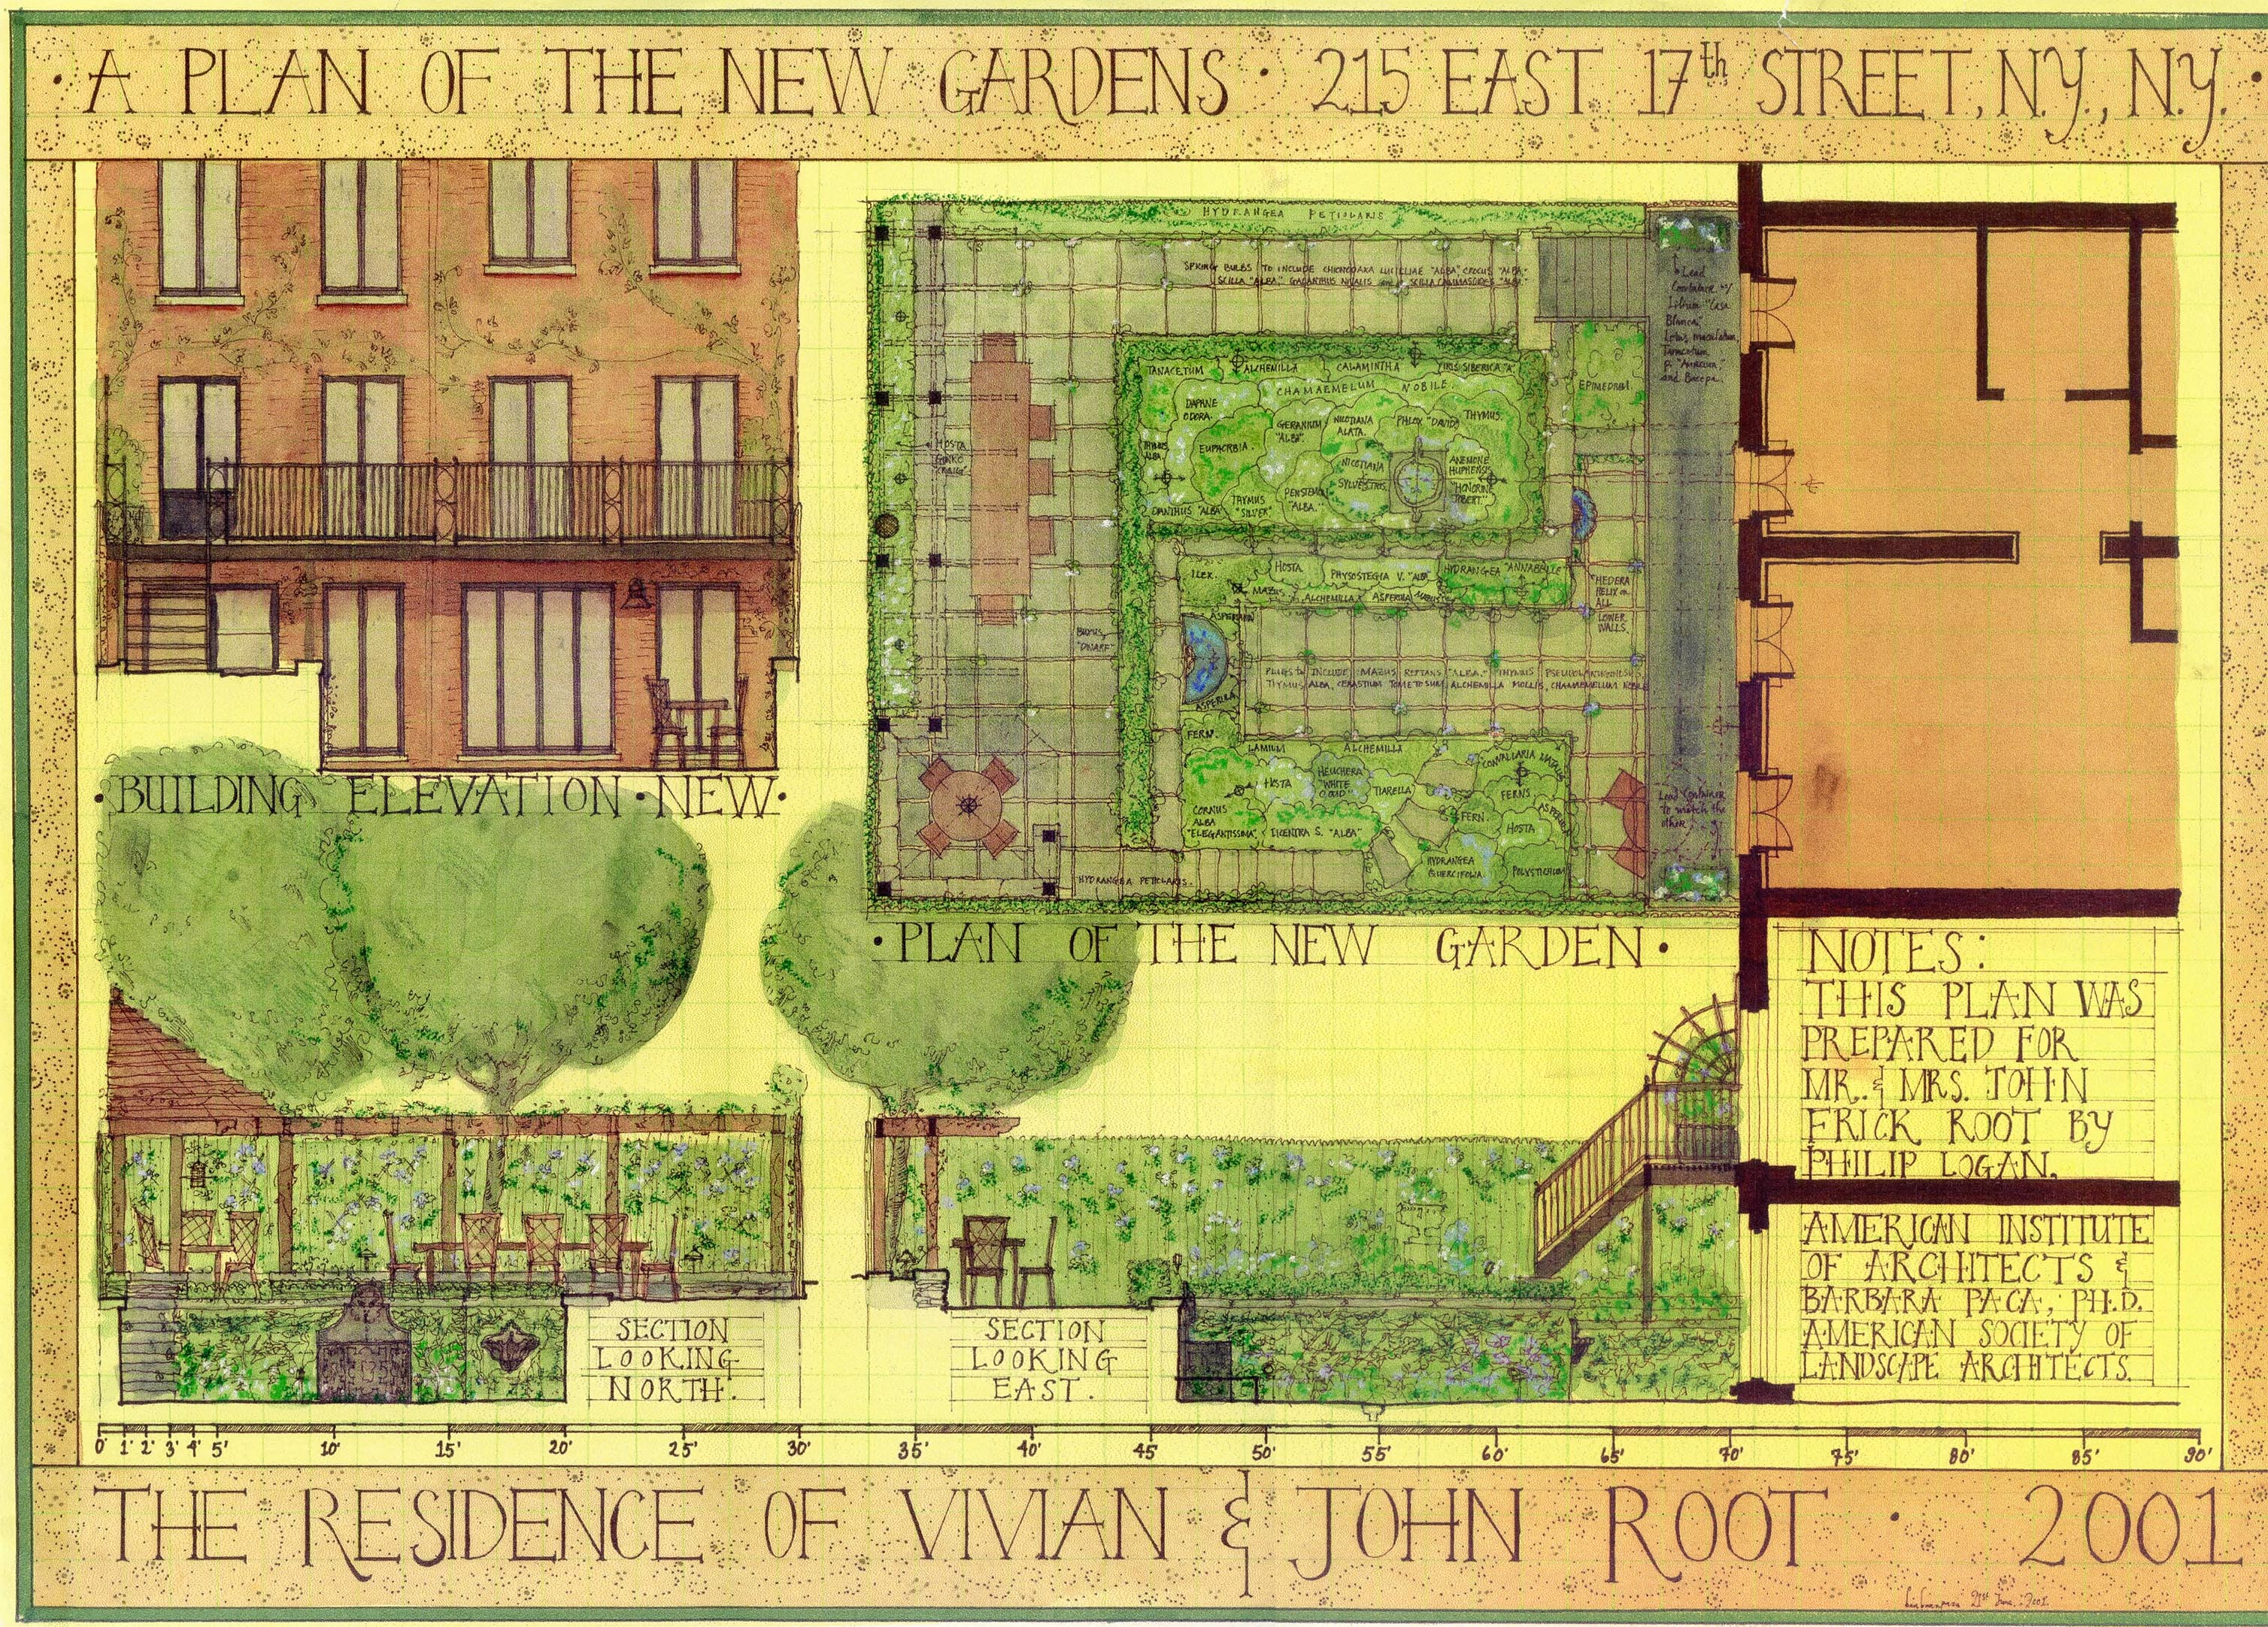 17th St Townhouse Gardens